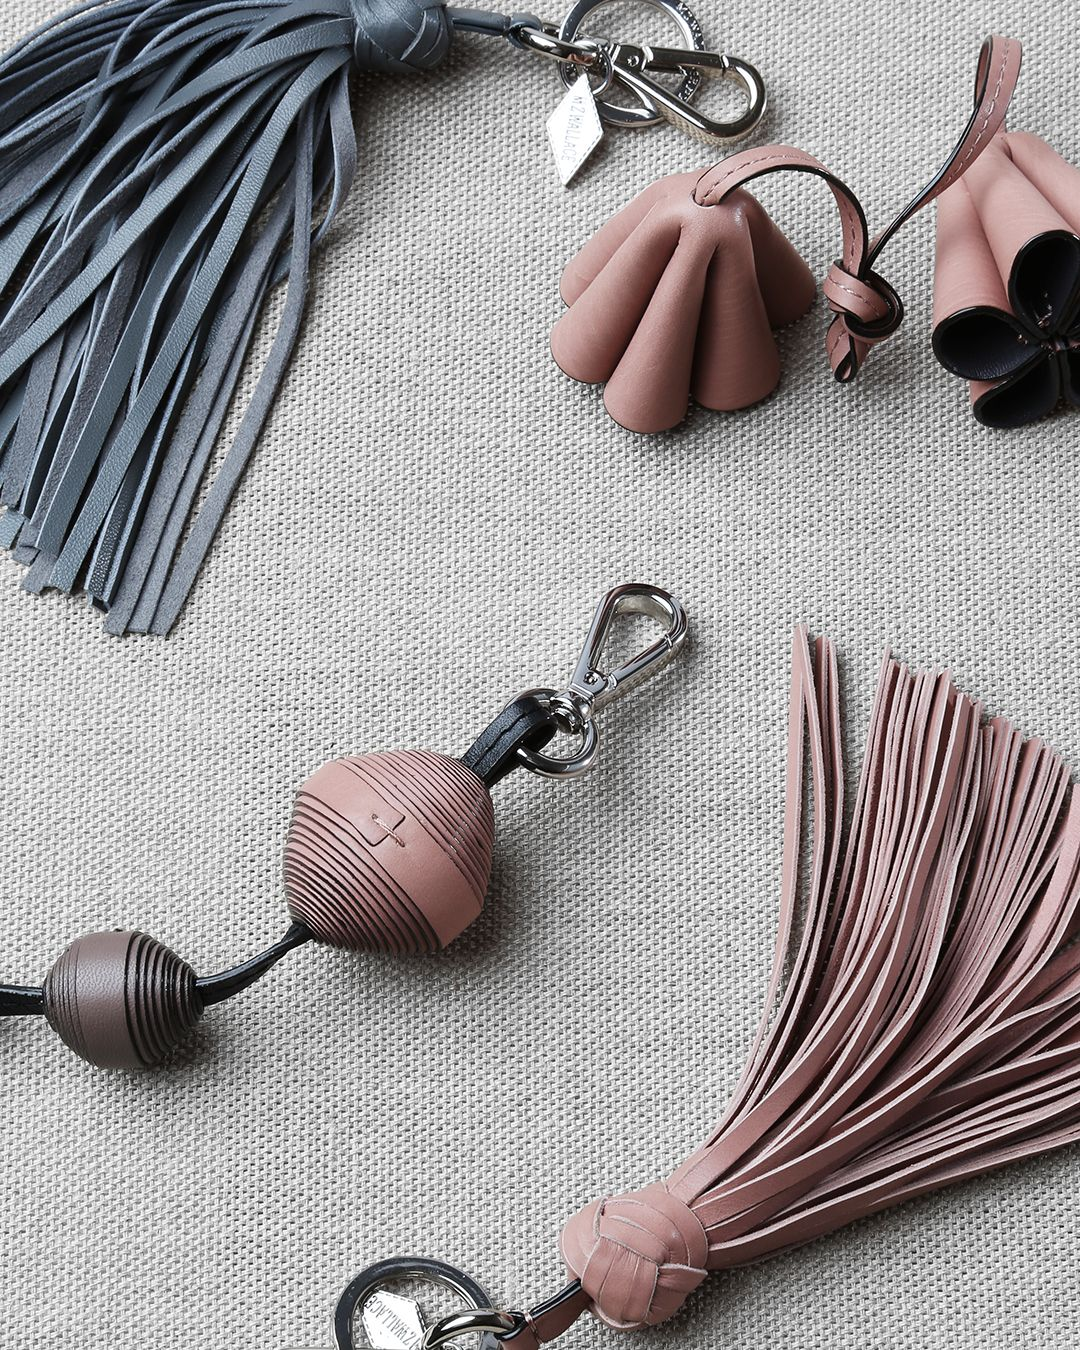 Make Your Bag Charming With These Stylish And Chic Leather Accessories